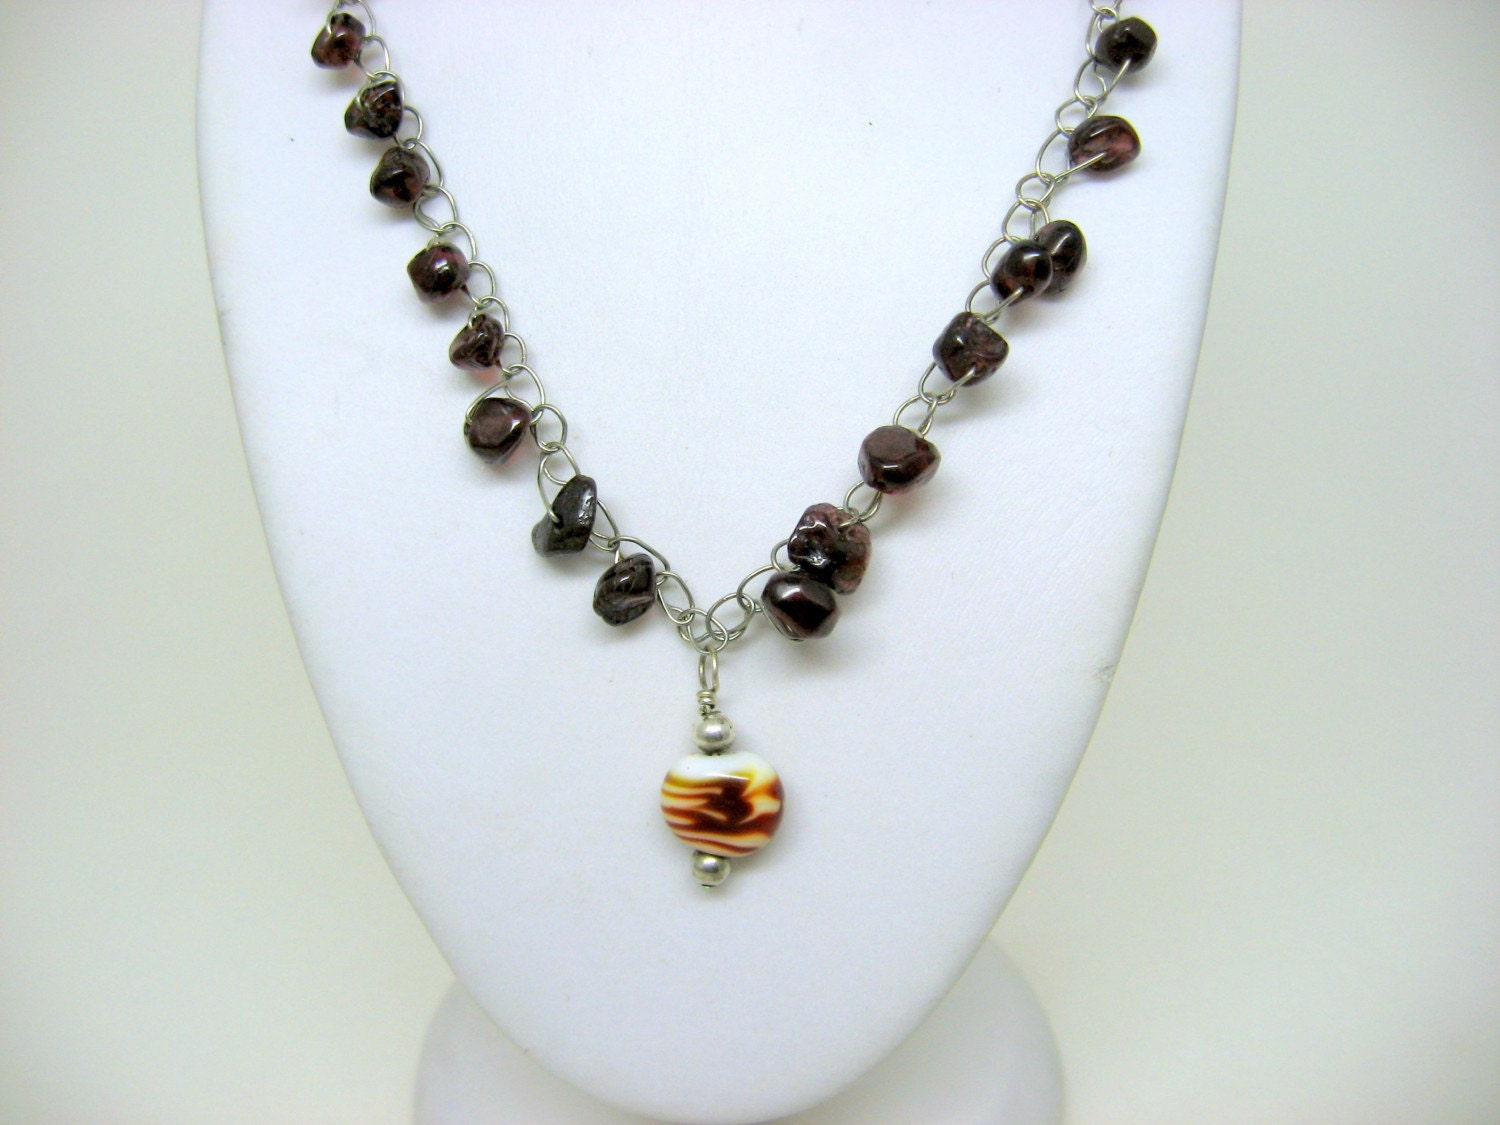 Garnet Anyway - crocheted wire necklace